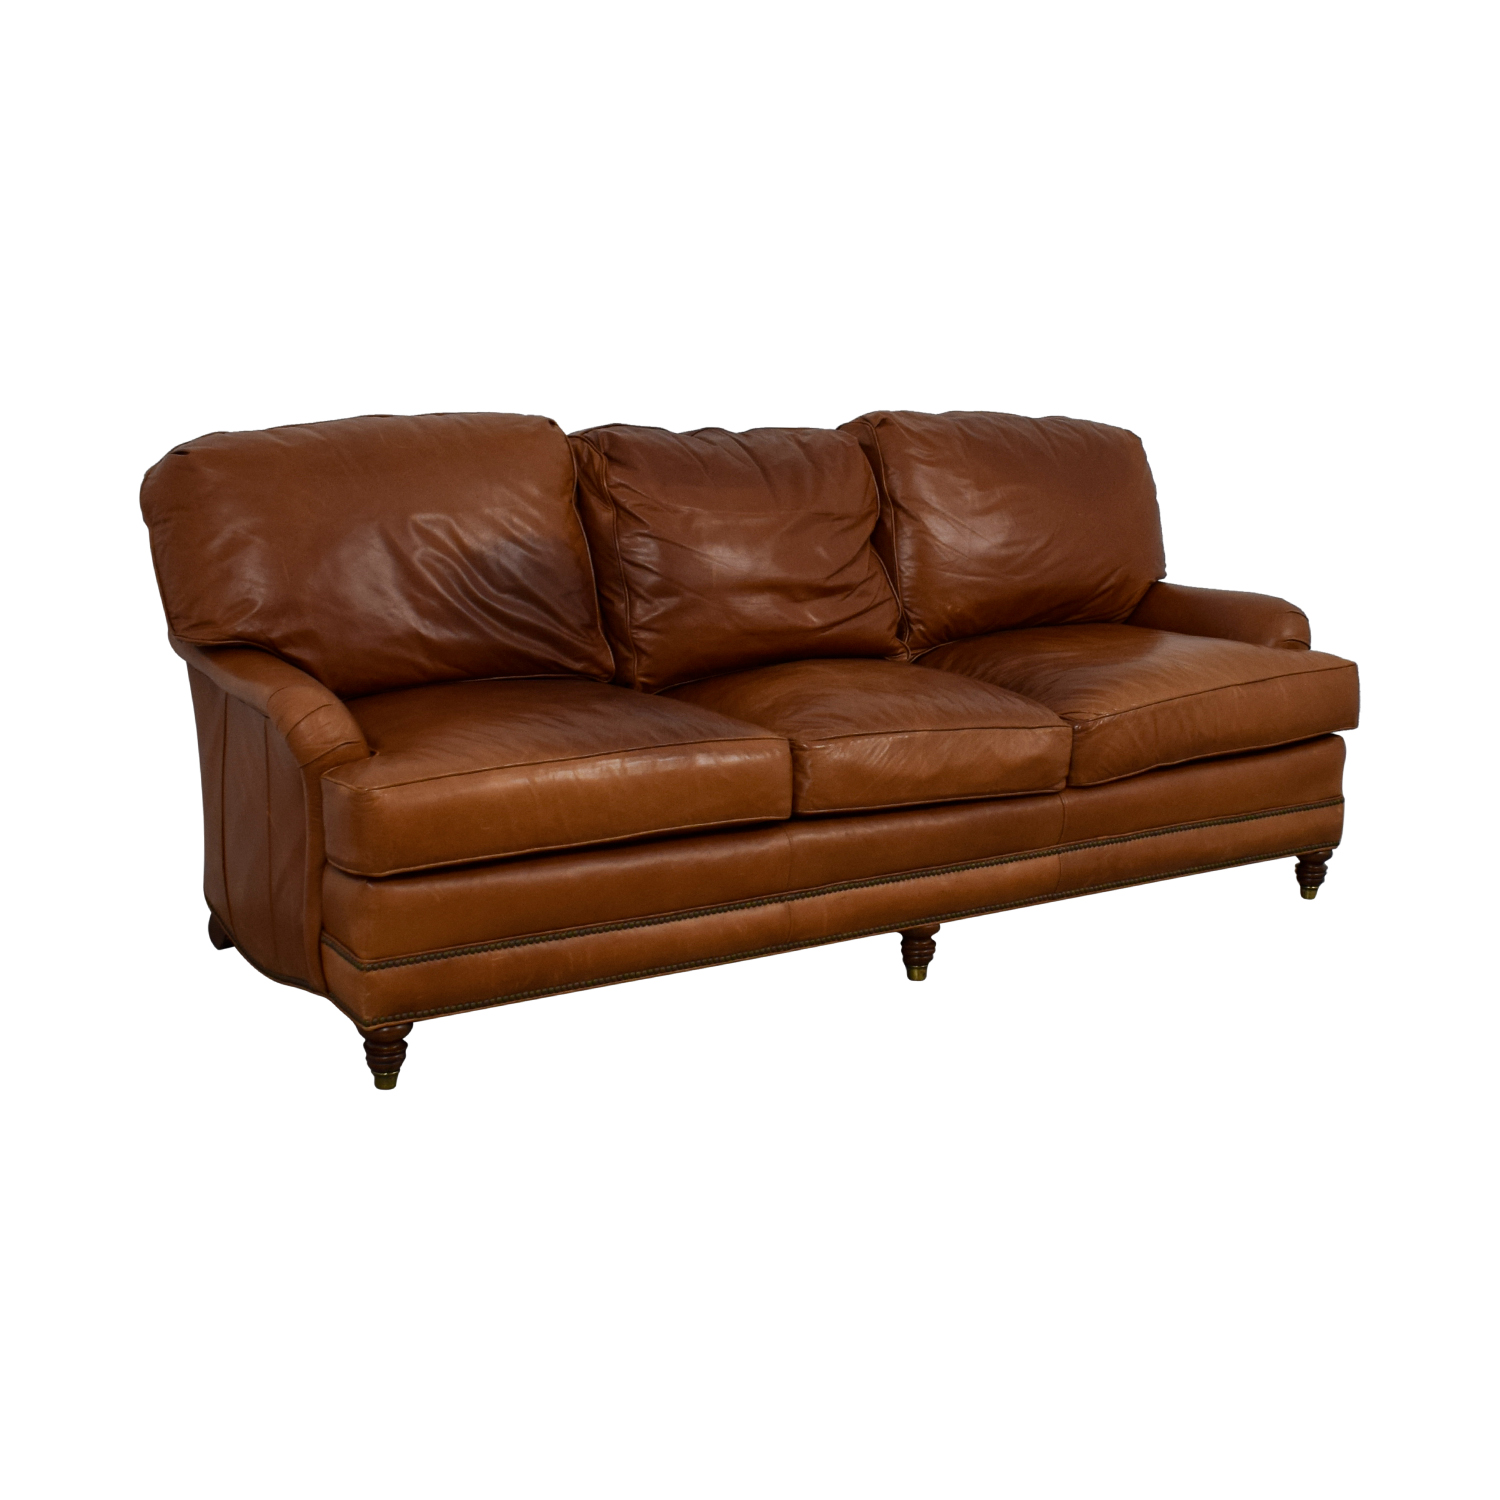 90 Off Whittemore Sherrill Whittemore Sherrill Brown Leather Sofa